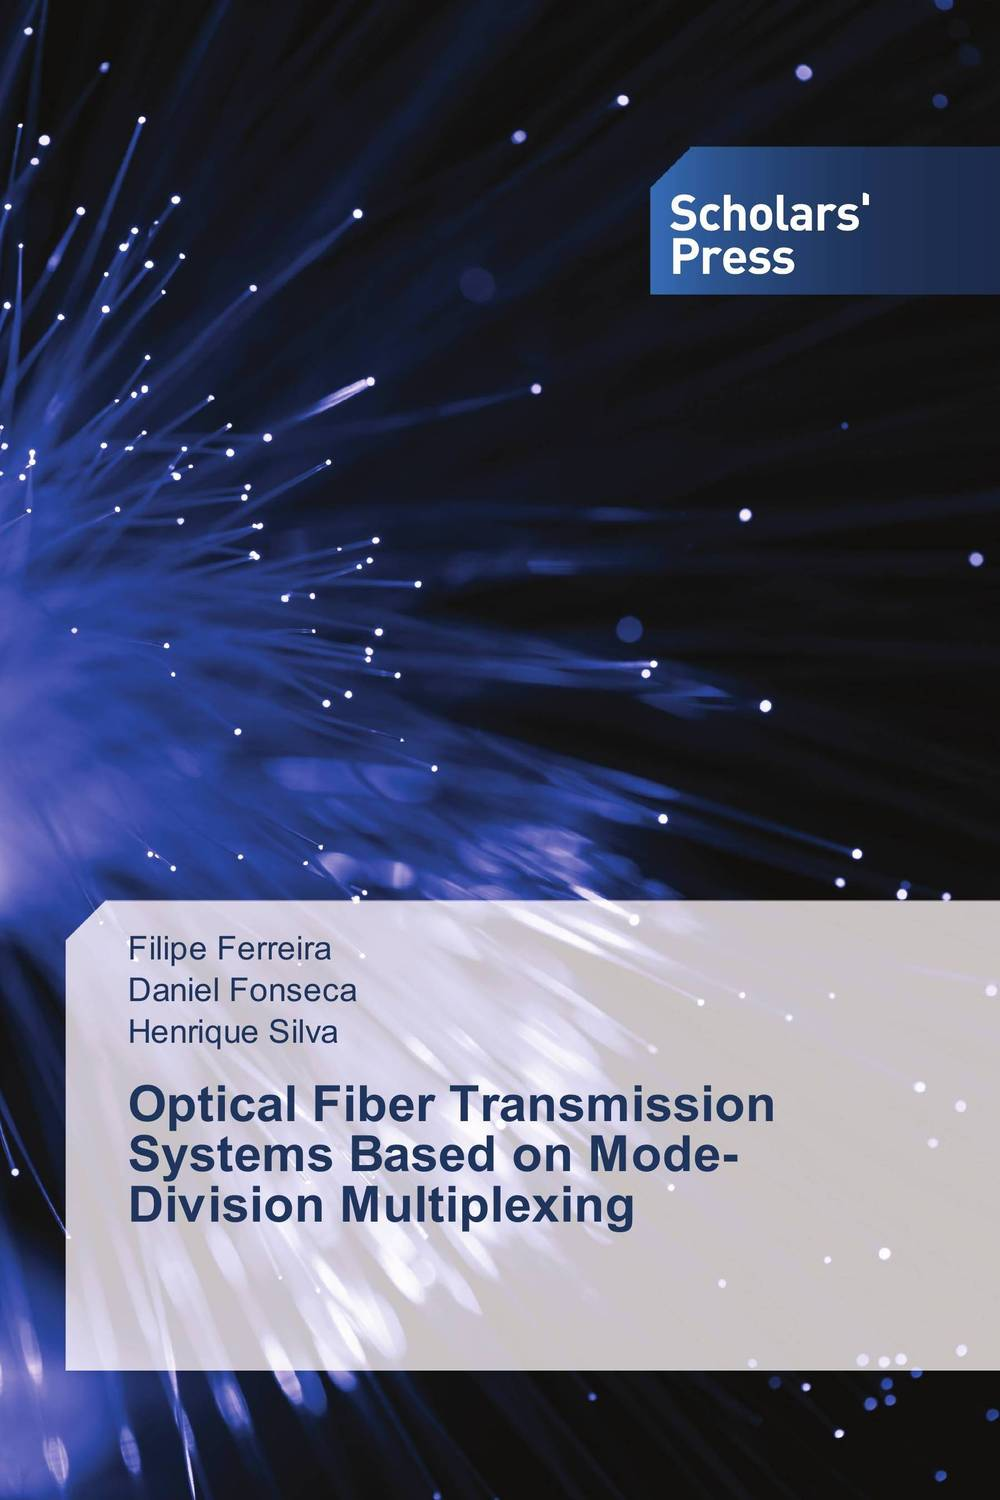 Optical Fiber Transmission Systems Based on Mode-Division Multiplexing optical fiber transmission systems based on mode division multiplexing